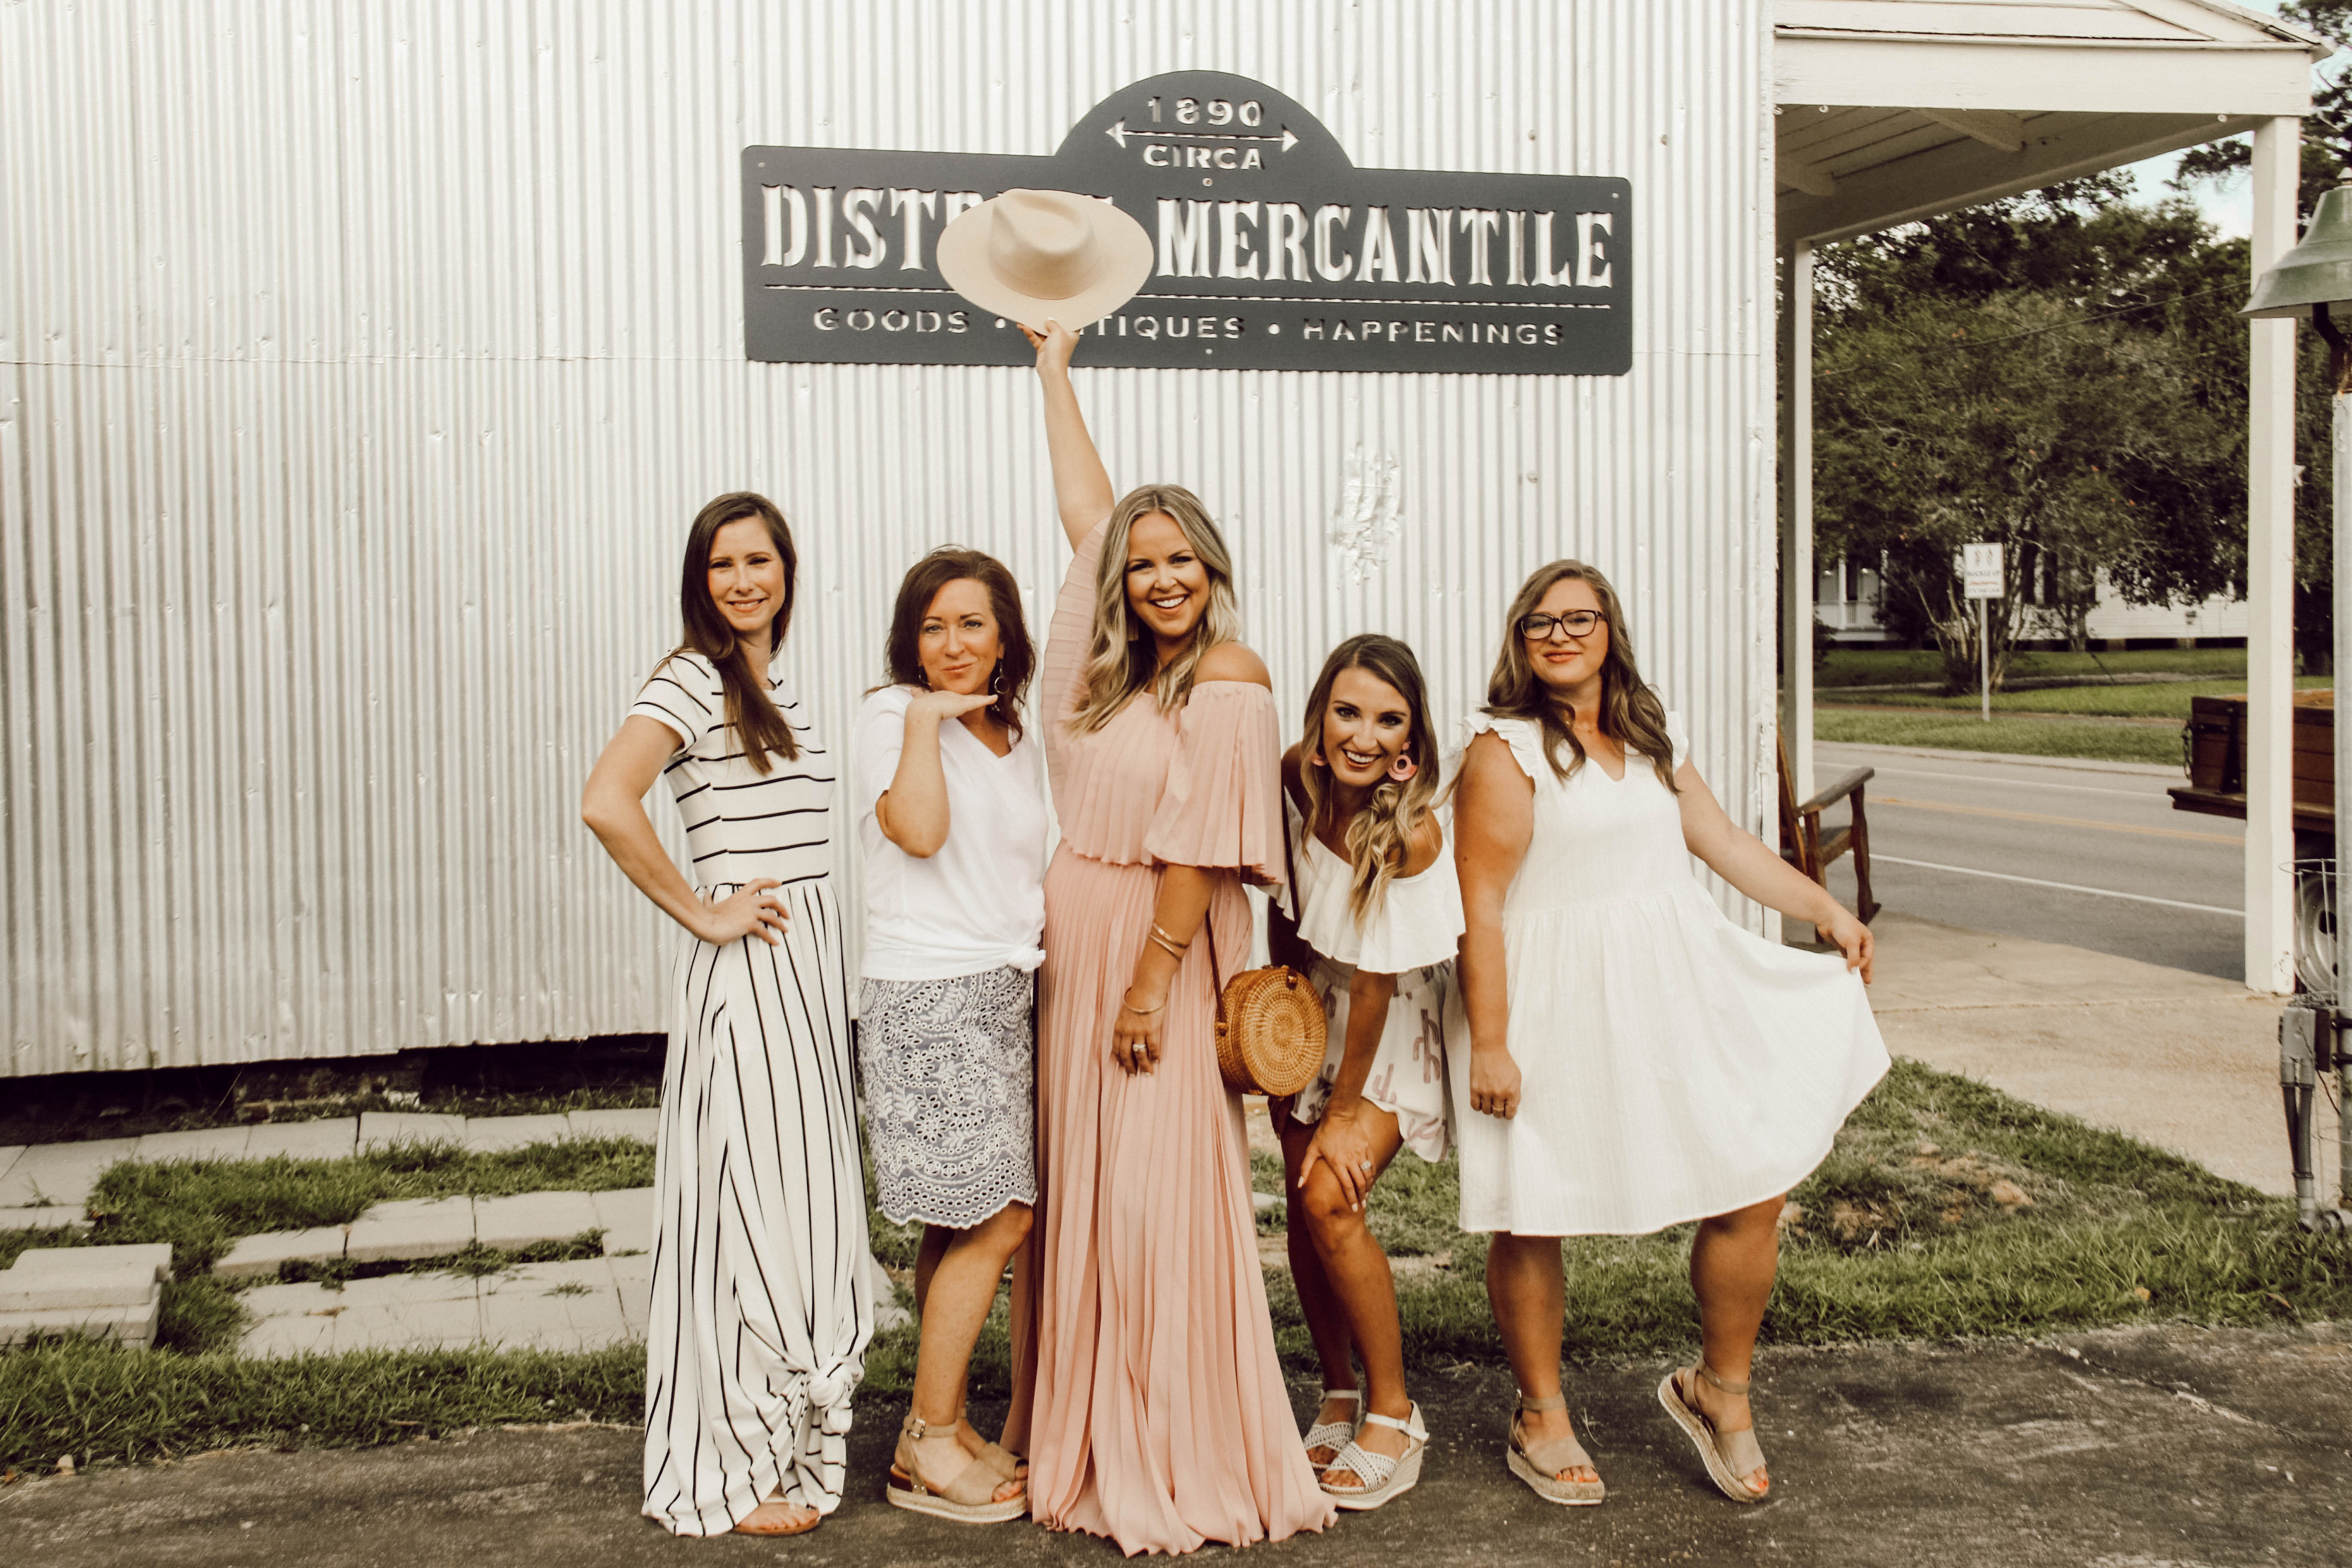 Our girls weekend in St. Francisville, Louisiana